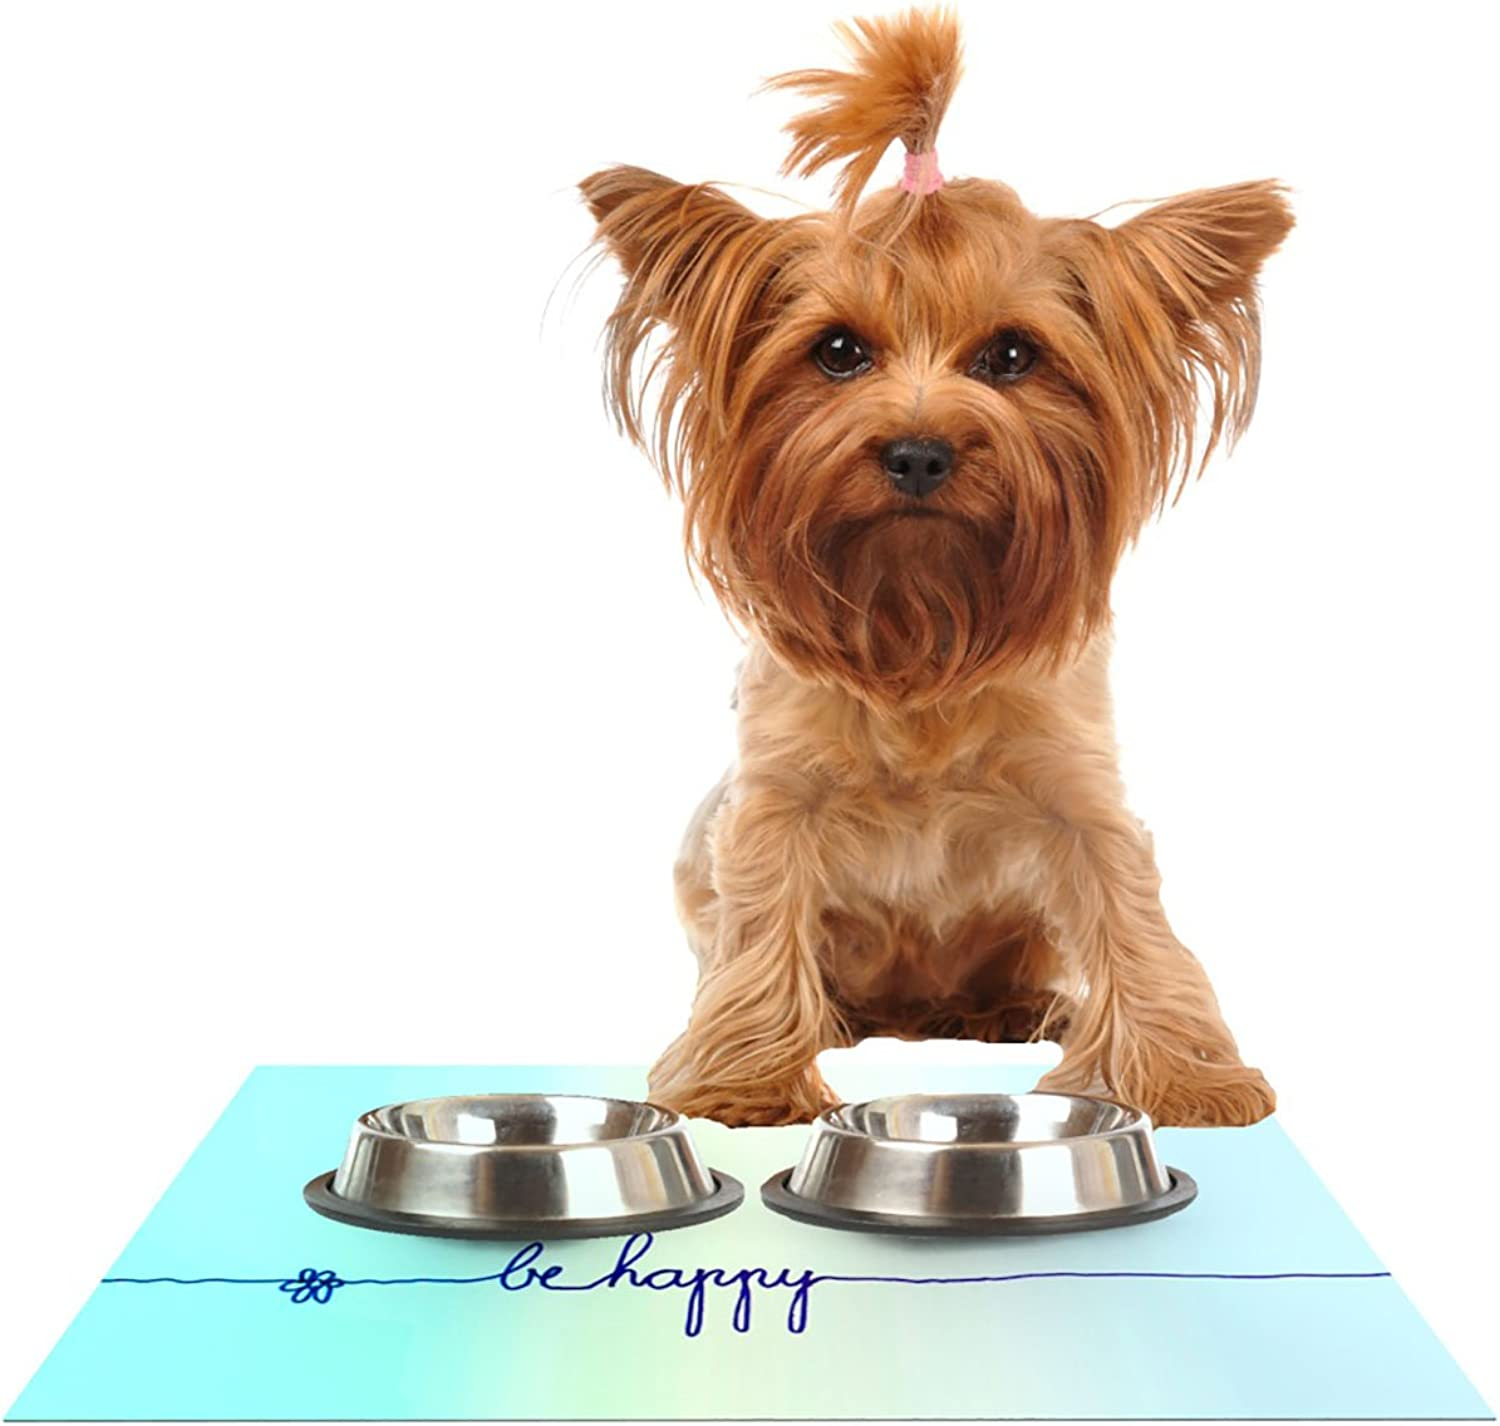 Kess InHouse Monika Strigel Be Happy Aqua  Simple bluee Pet Bowl Placemat for Dog and Cat Feeding Mat, 24 by 15Inch